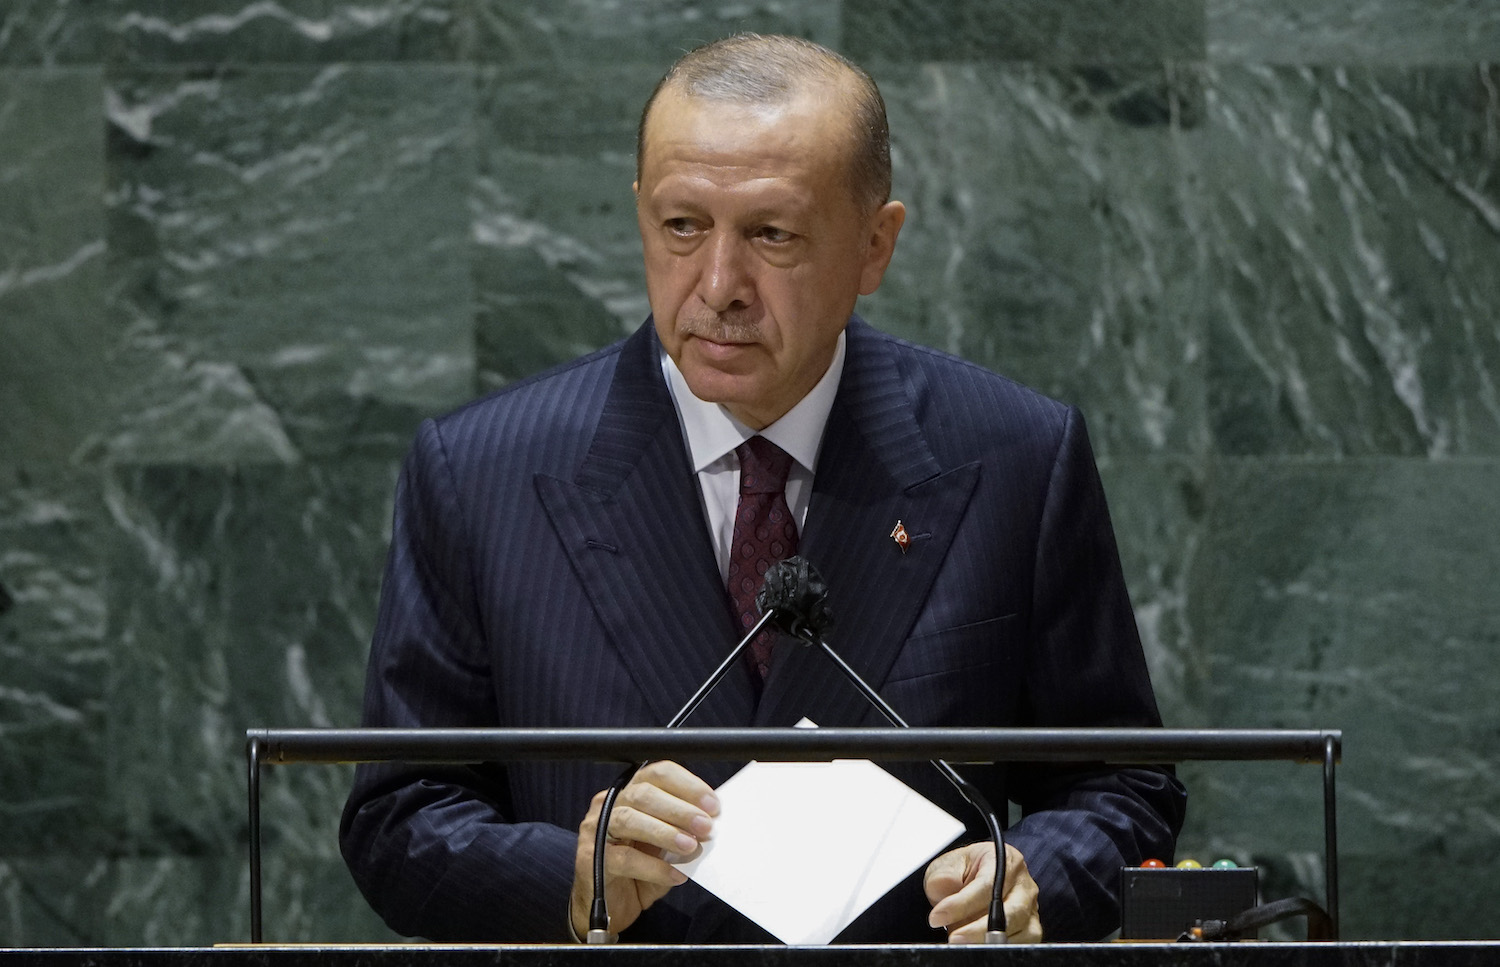 Turkish President Tayyip Erdogan addresses the 76th Session of the U.N. General Assembly in New York on Sept. 21.